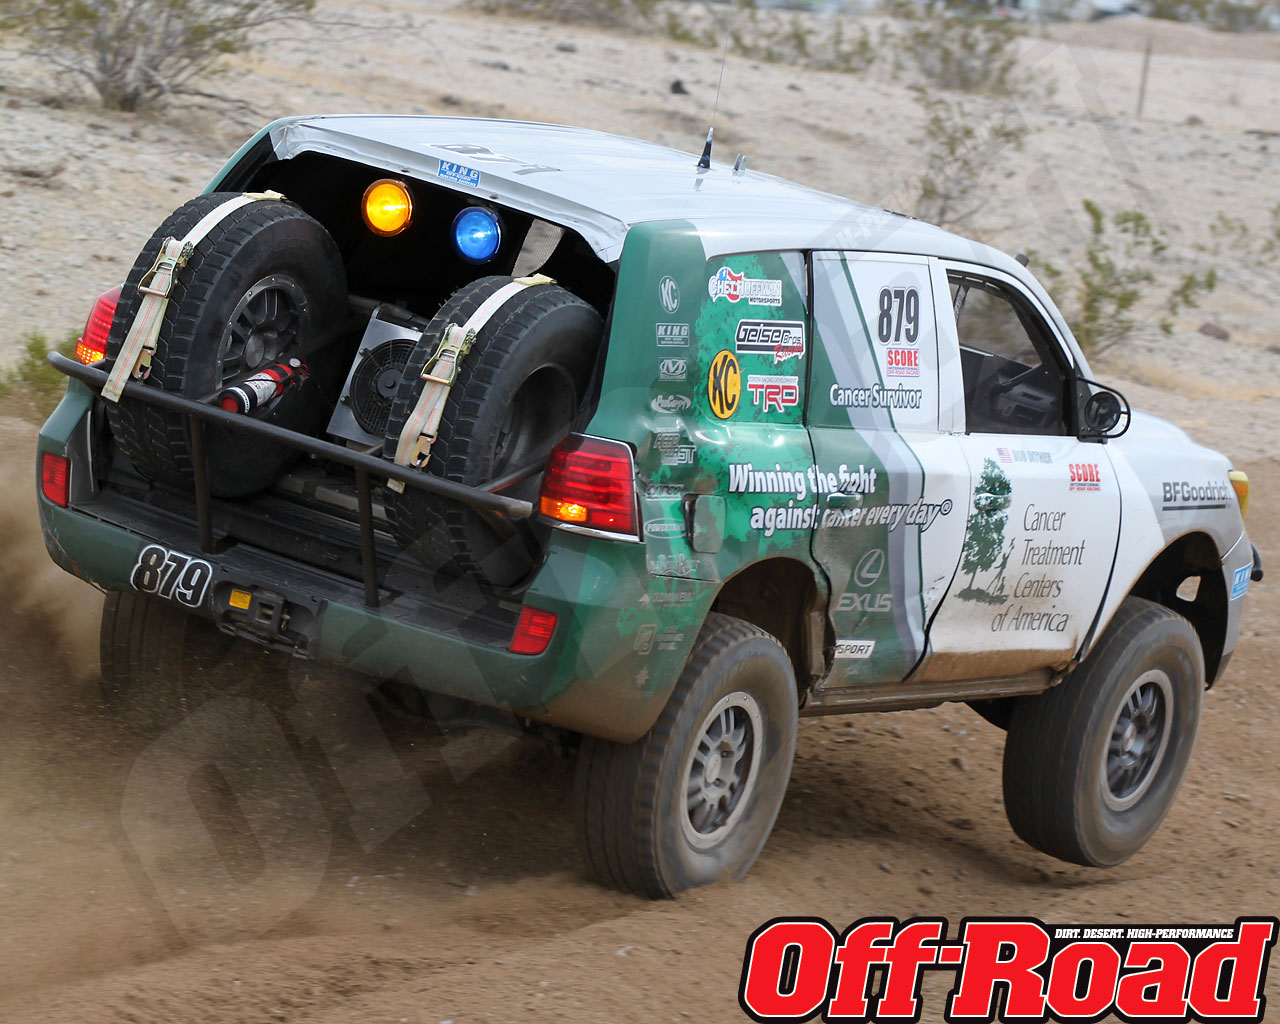 1002or 0972 o+2010 score laughlin desert challenge+off road race trucks